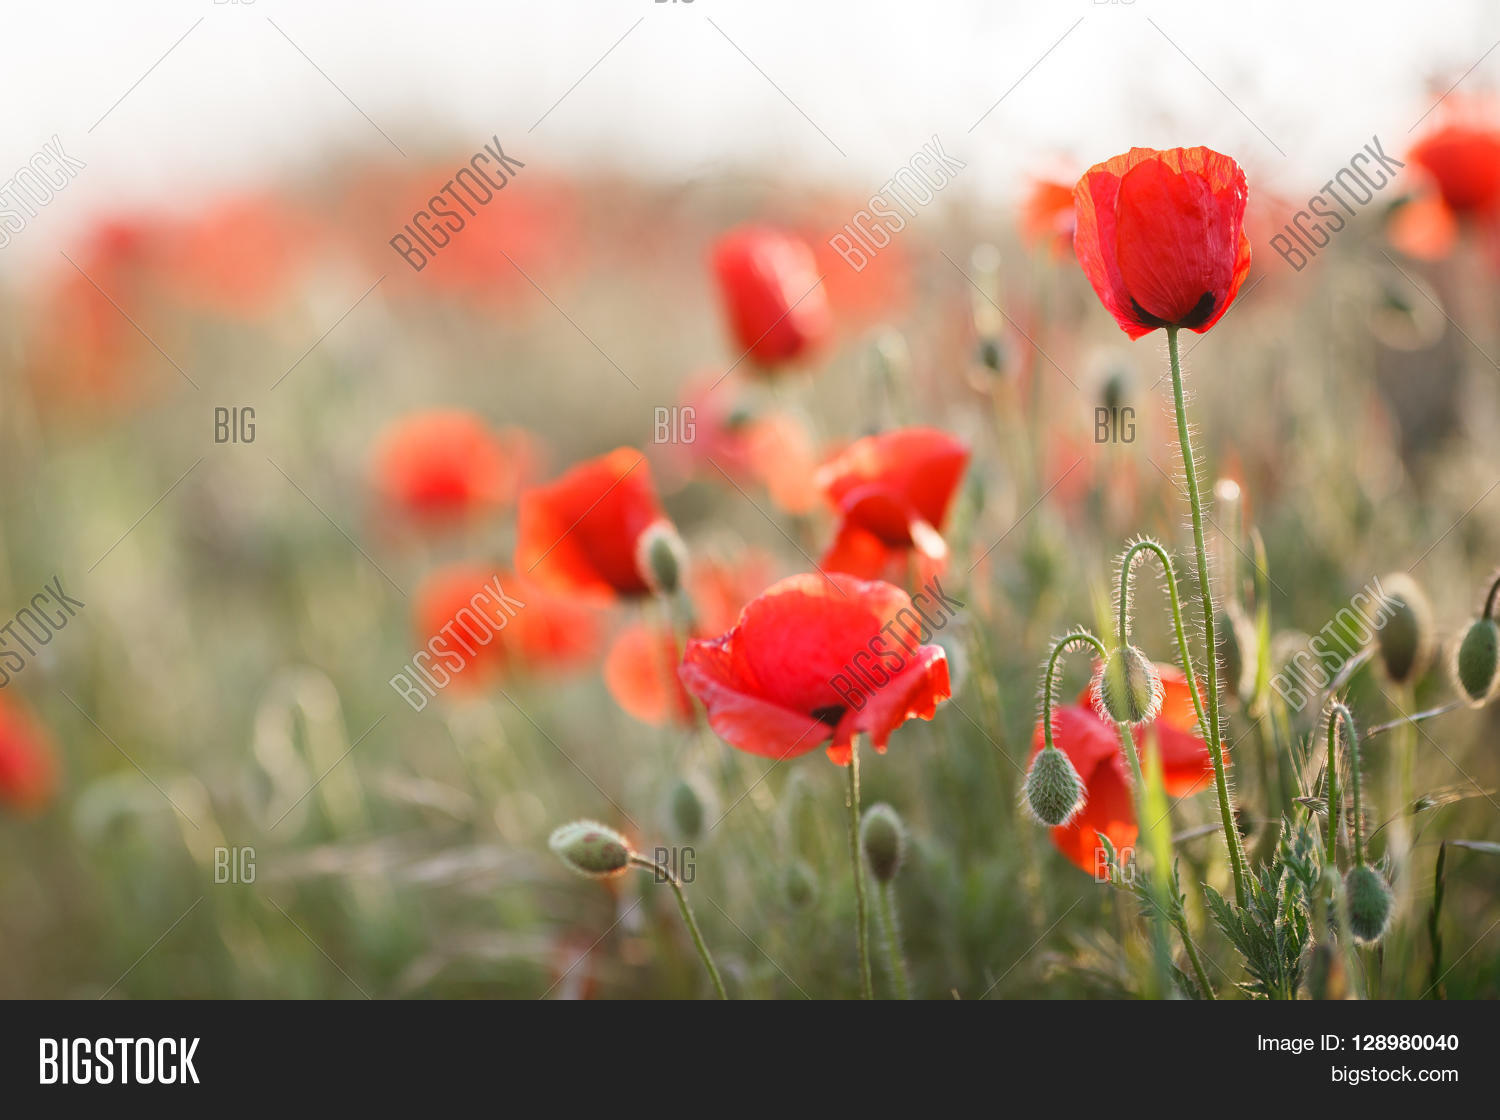 Bright Red Flowers Of The Wild Poppy Field On A Summer Green Meadow Open With